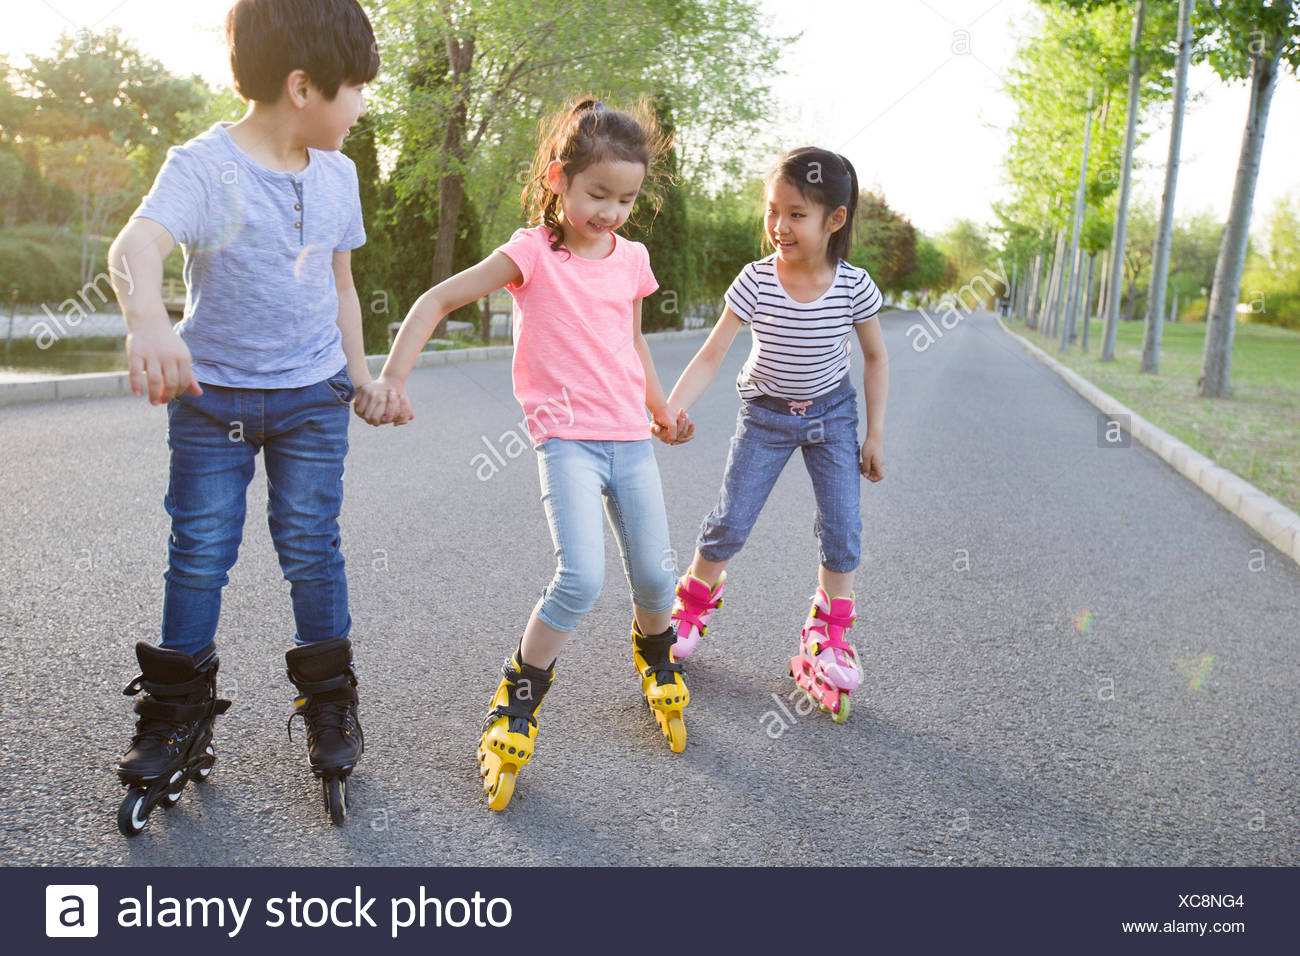 Children Roller Skating High Resolution Stock Photography And Images Alamy